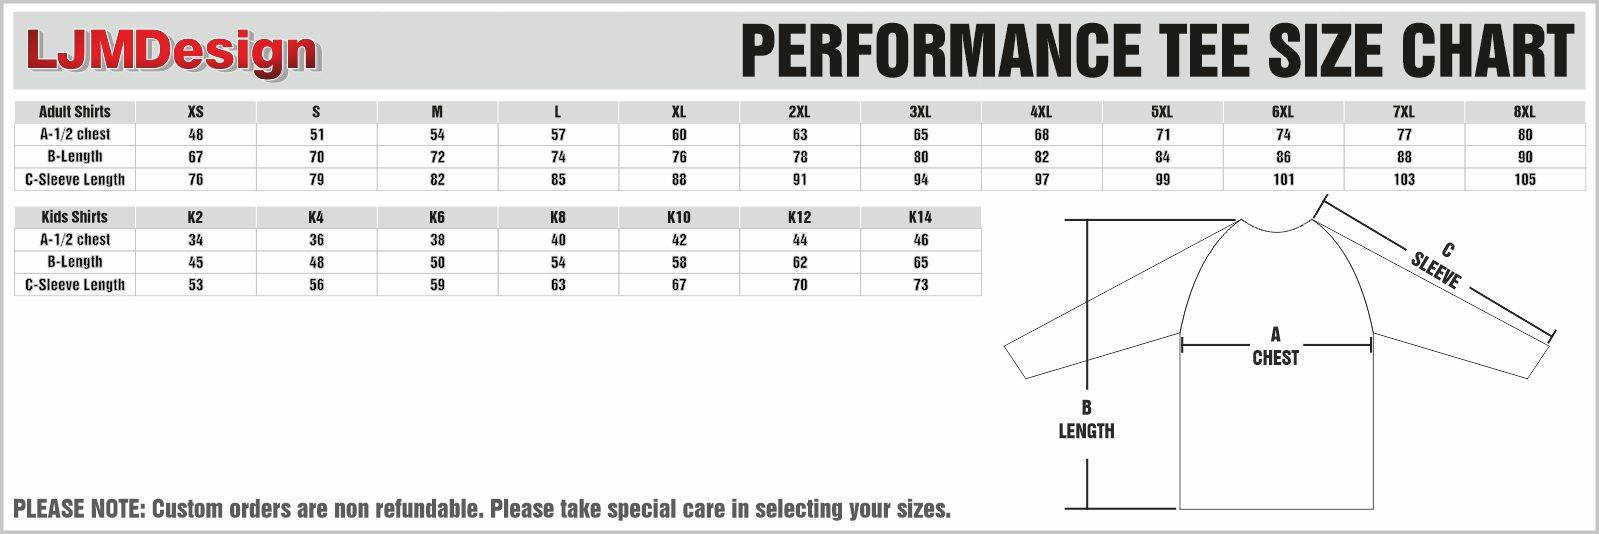 performance tee size chart